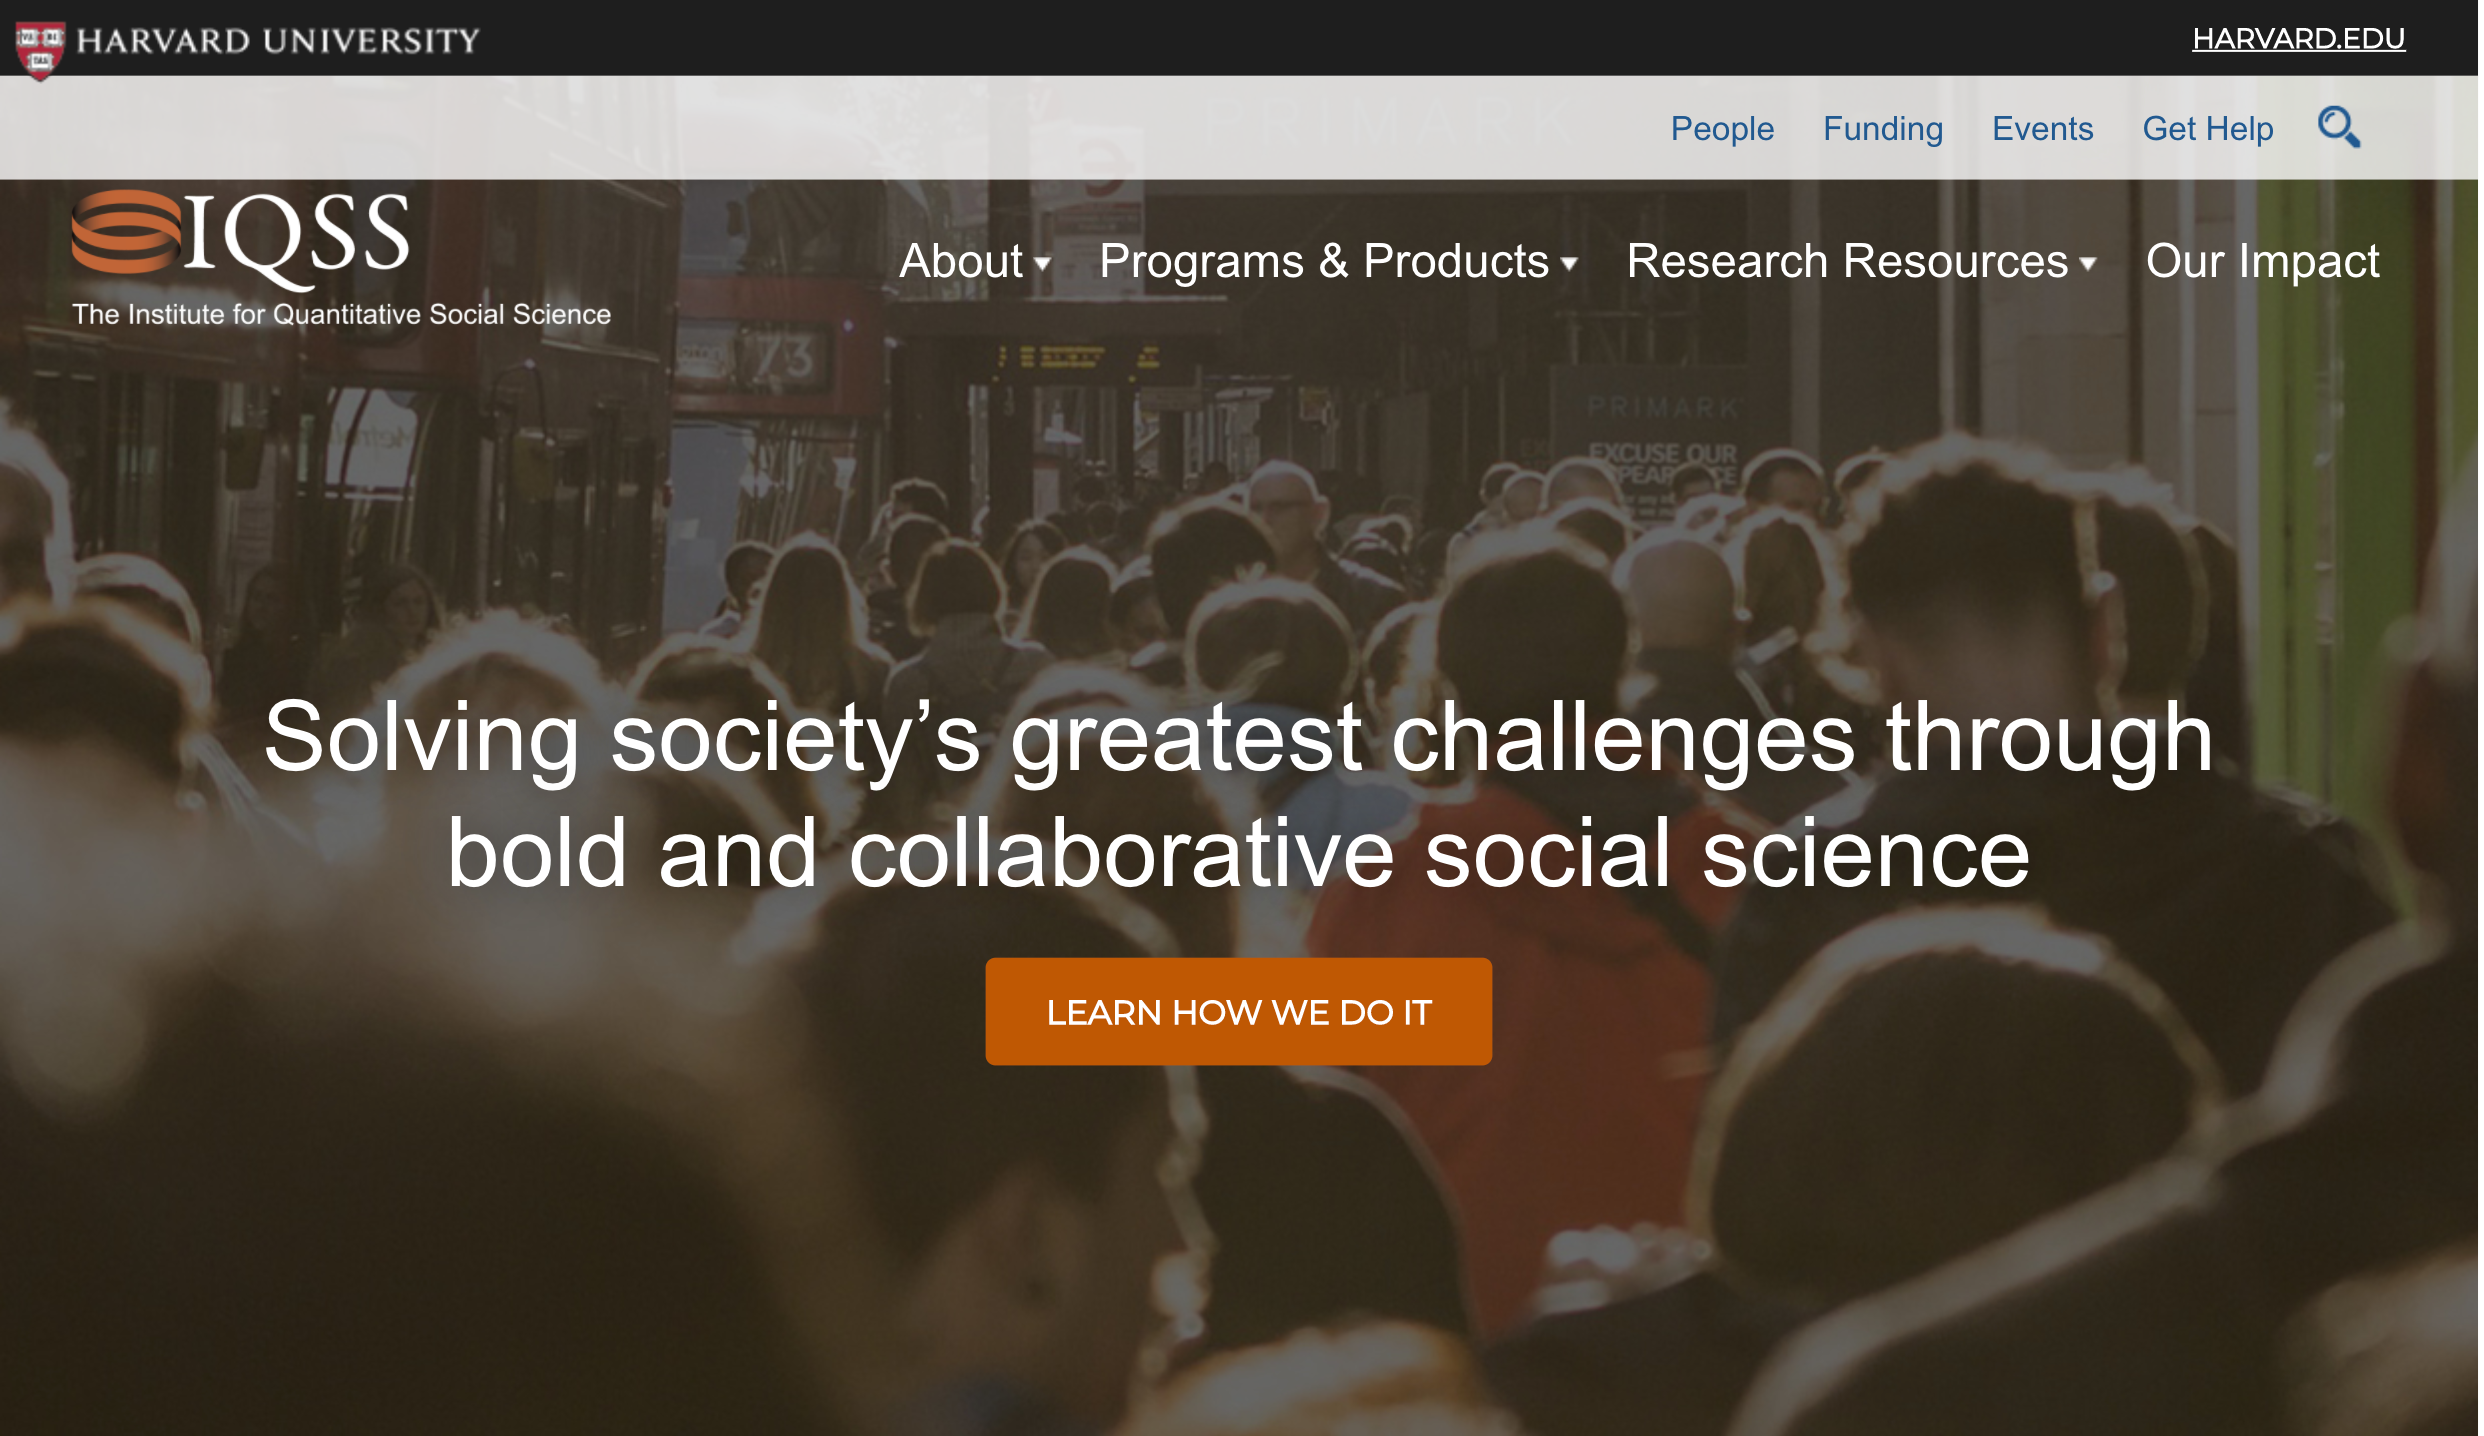 IQSS: The Institute for Quantitative Social Science